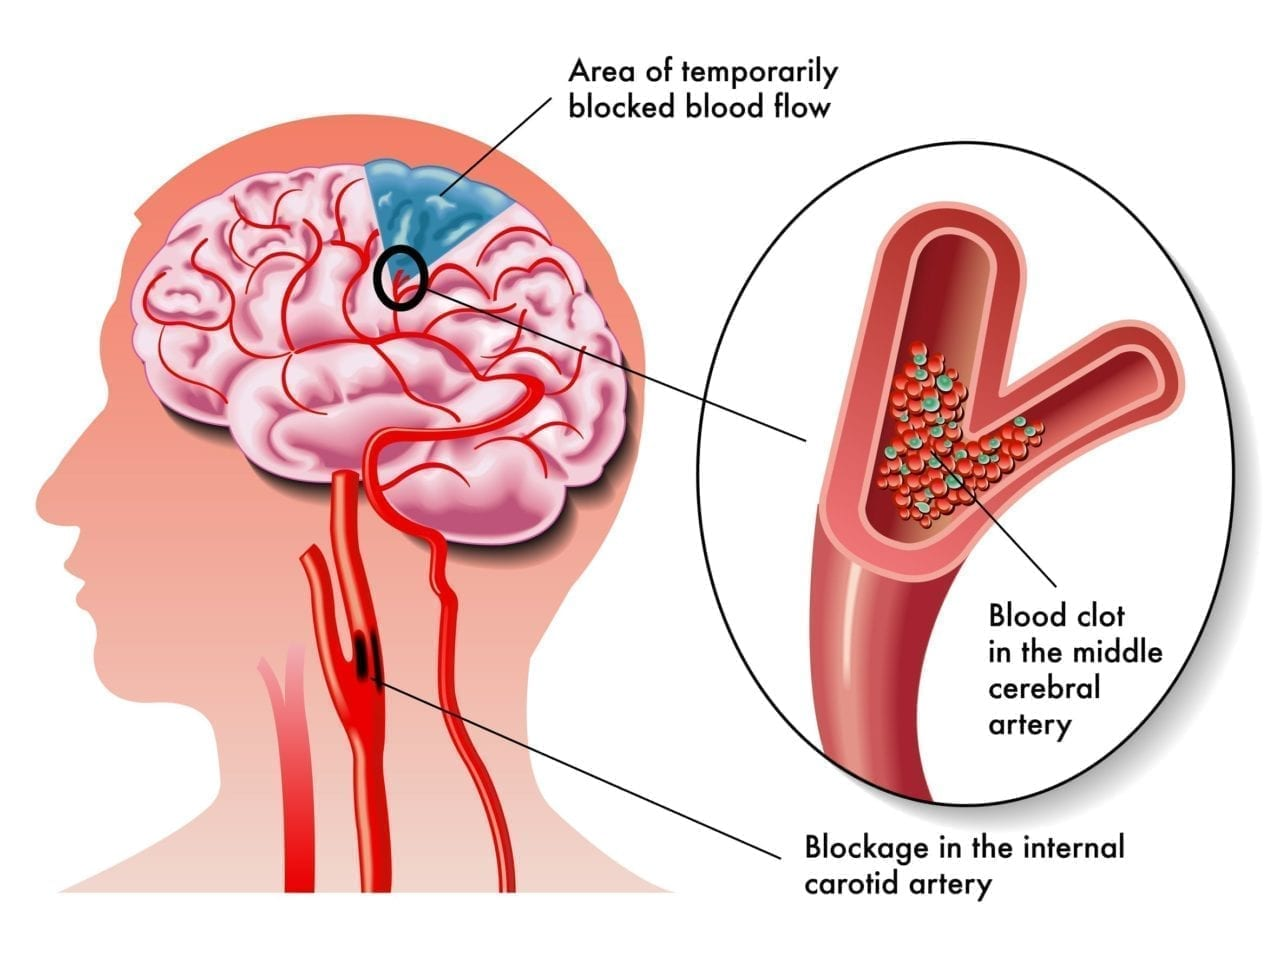 """Transient ischemic attack, sometimes called a """"minor stroke"""", occurs when a temporary blockage of blood flow to the brain causes neurological symptoms such as slurred speech or paralysis. The VA's PREVENT program aims to provide VA facilities and health care providers with the resources and information necessary to ensure veterans receive the best possible treatment for TIA."""